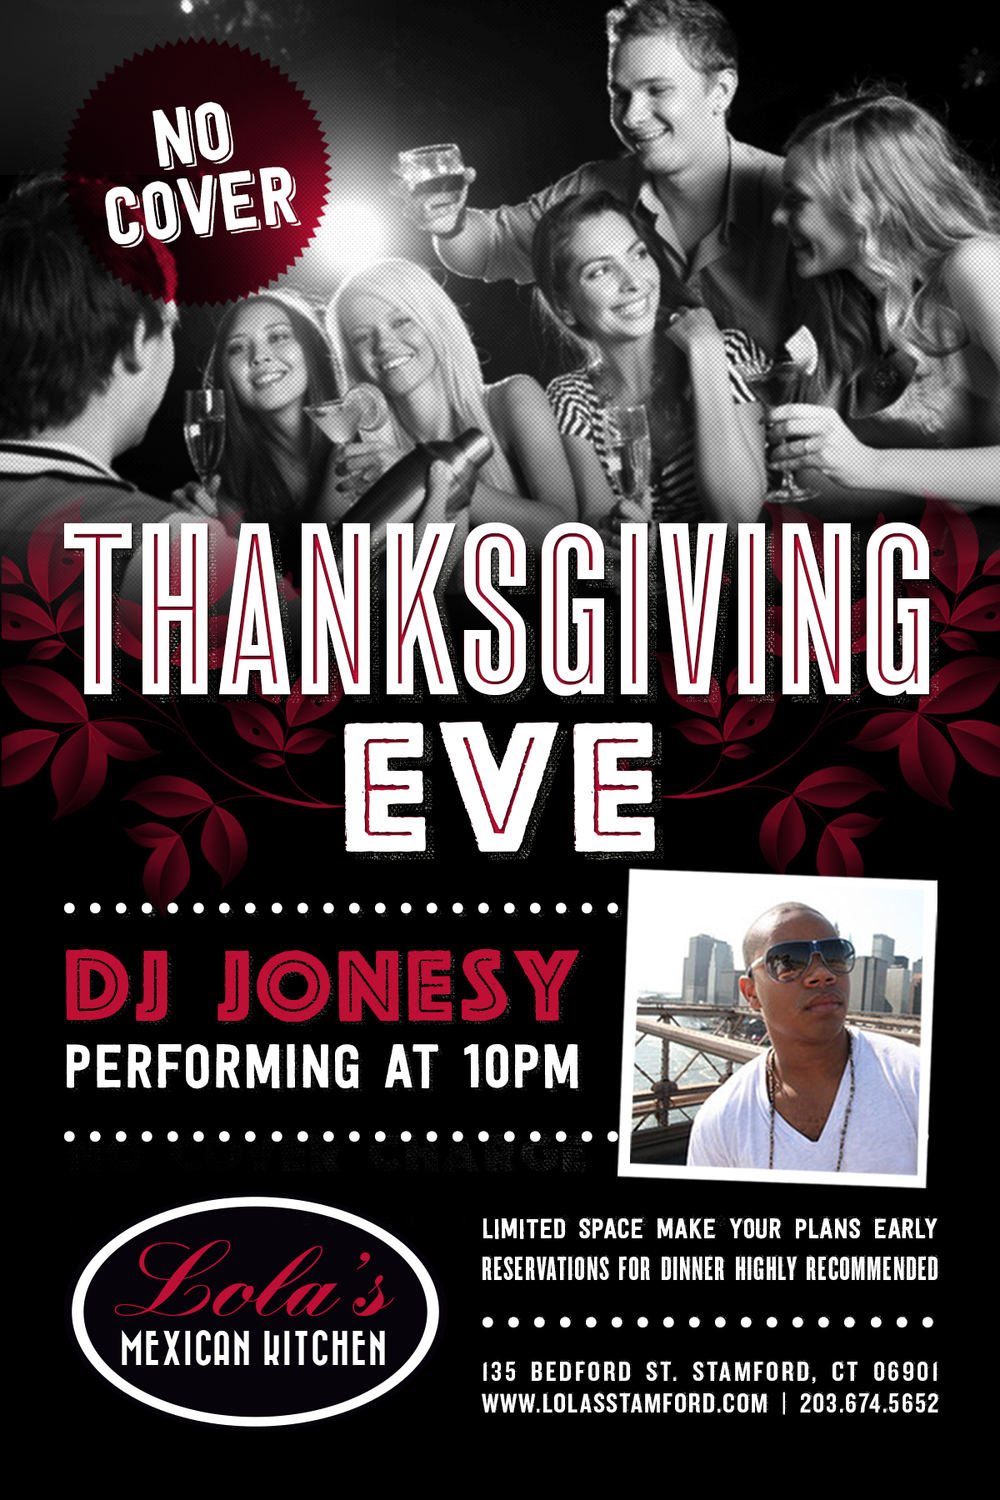 Thanksgiving Eve join me at Lola's Mexican Kitchen @ 10pm.  Music by JONESY  No Cover